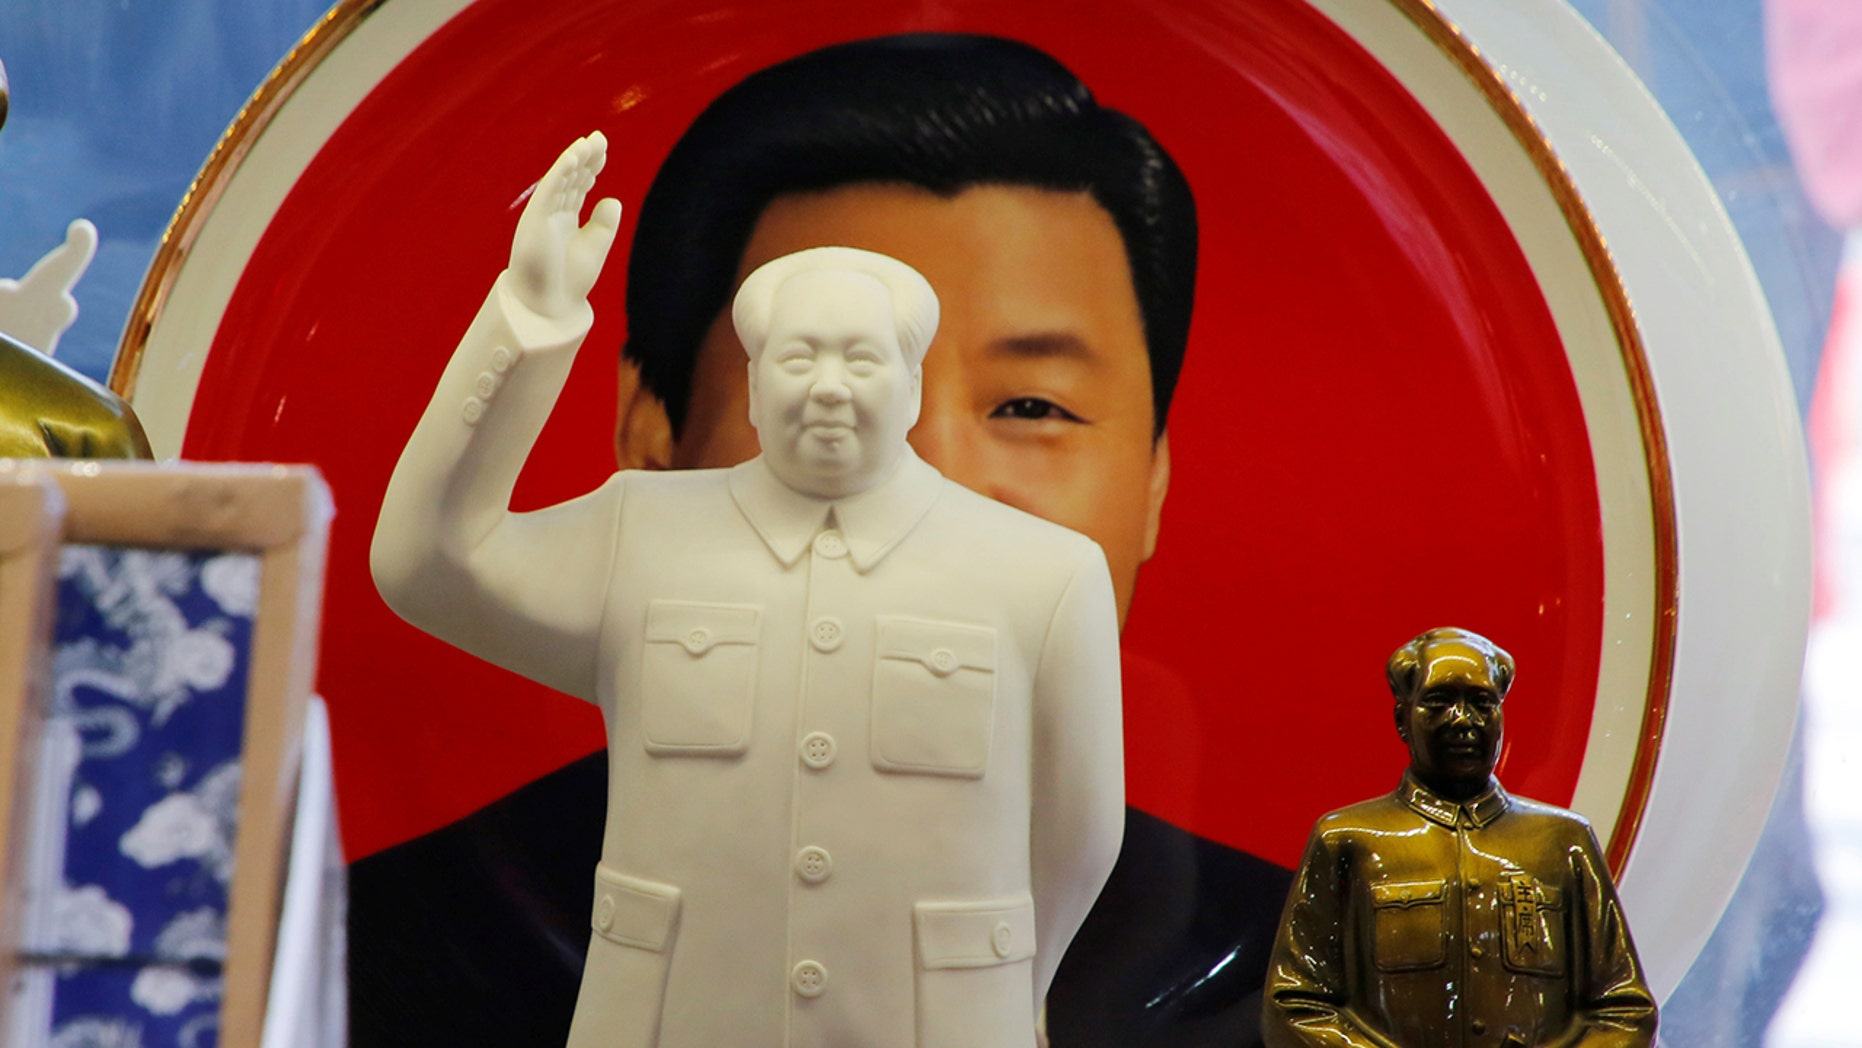 Sculptures of the late Chinese Chairman Mao Zedong are placed in front of a souvenir plate featuring a portrait of Chinese President Xi Jinping at a shop next to Tiananmen Square in Beijing, China.